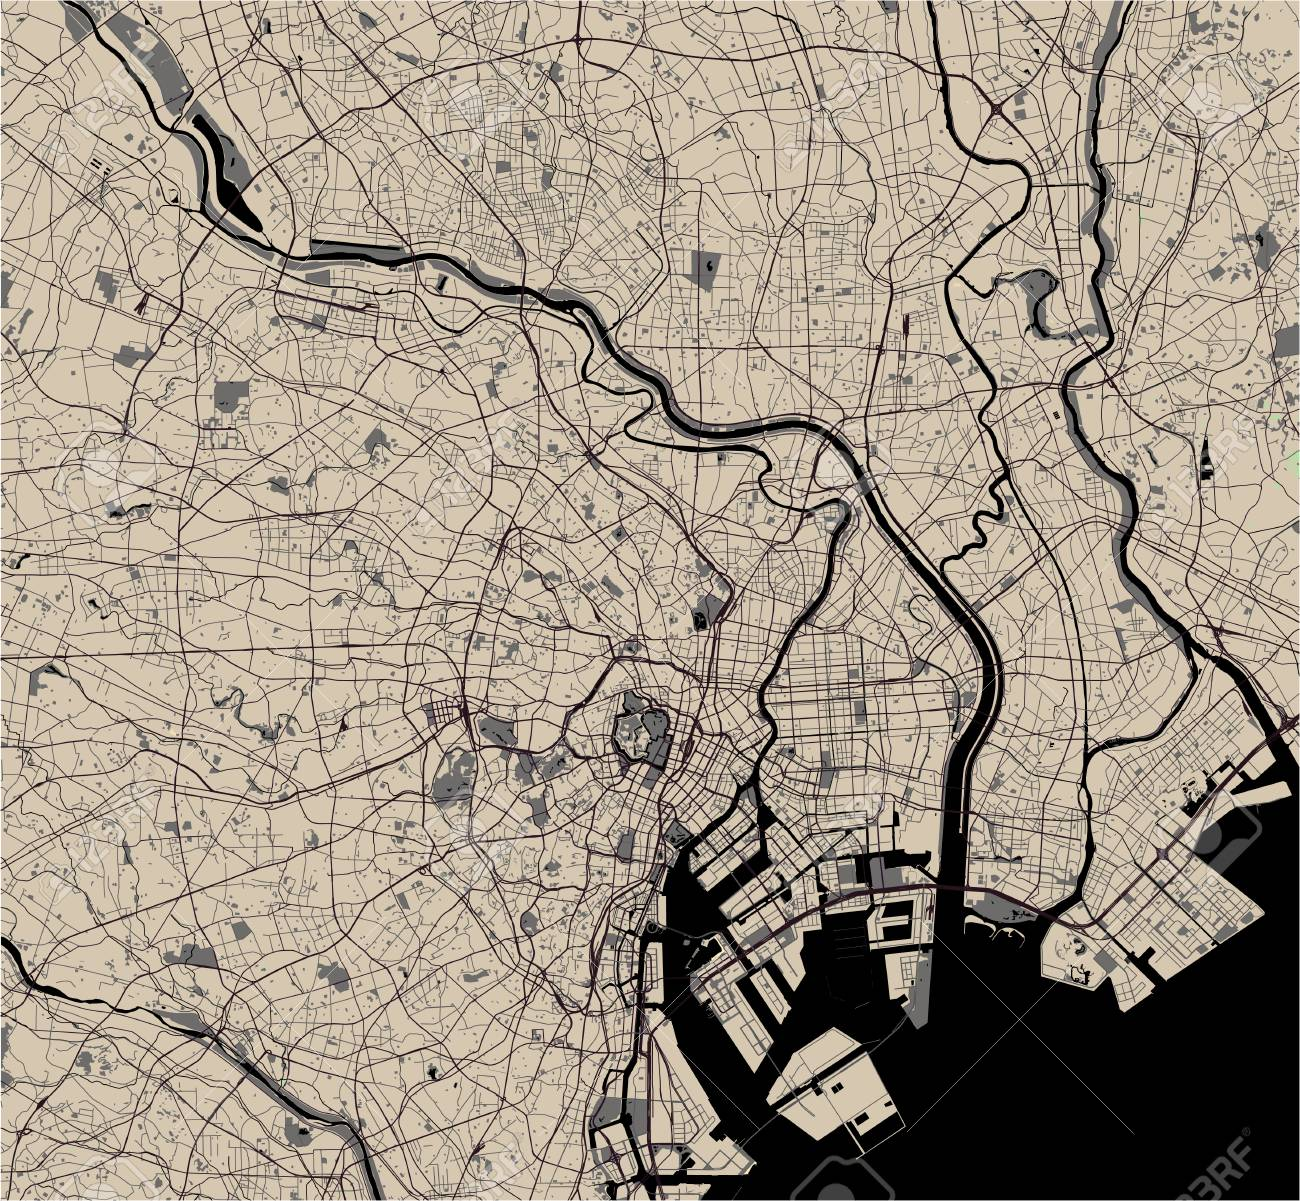 Picture of: Vector Map Of The City Of Tokyo Kanto Island Honshu Japan Royalty Free Cliparts Vectors And Stock Illustration Image 126603114